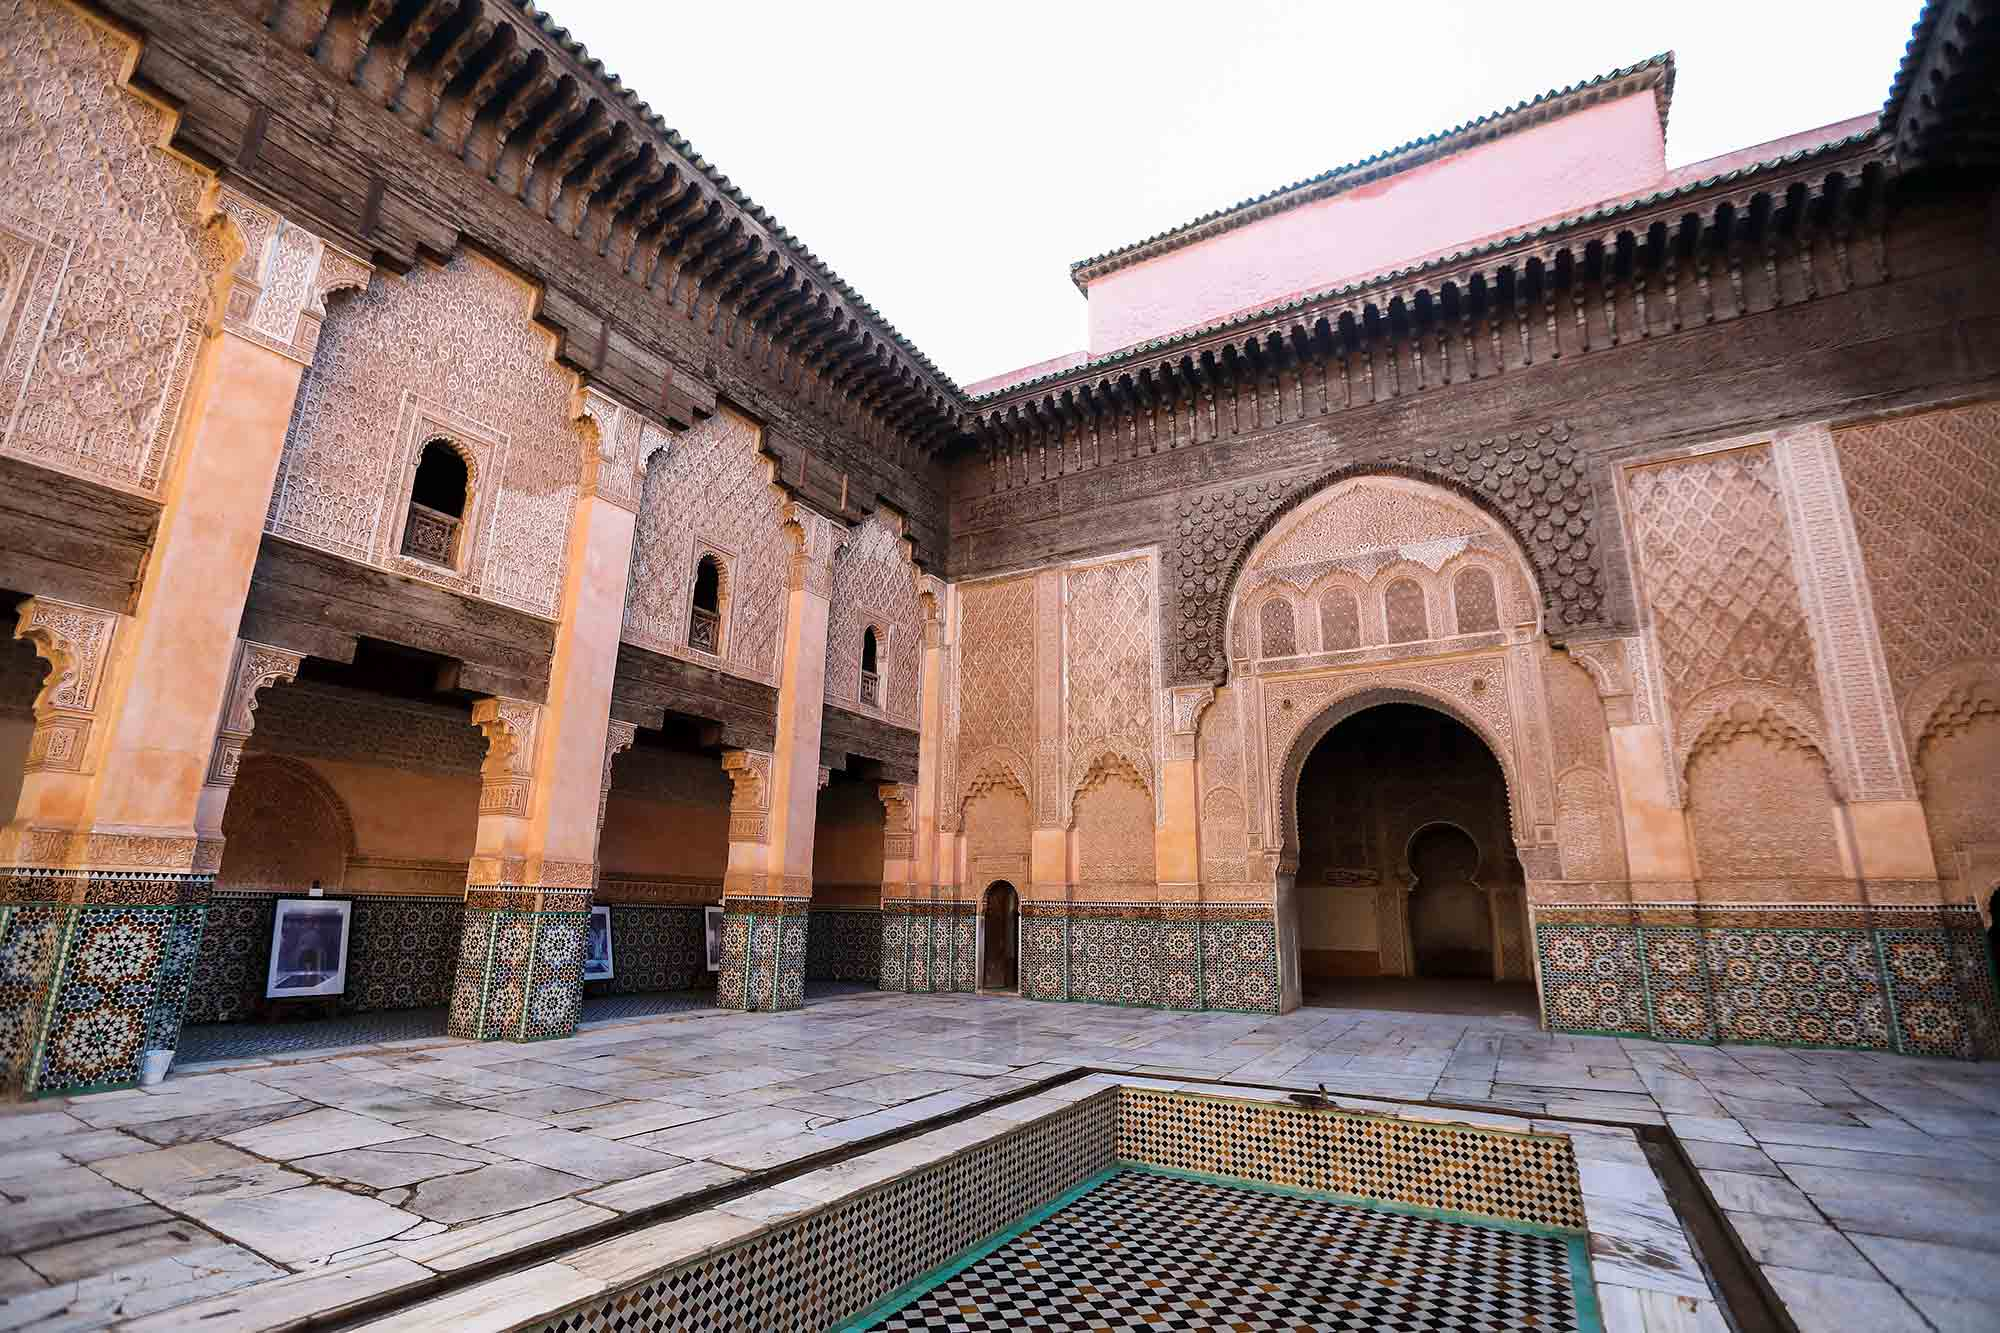 Ben Youssef Medersa still works its charms on visitors. © ULLI MAIER & NISA MAIER